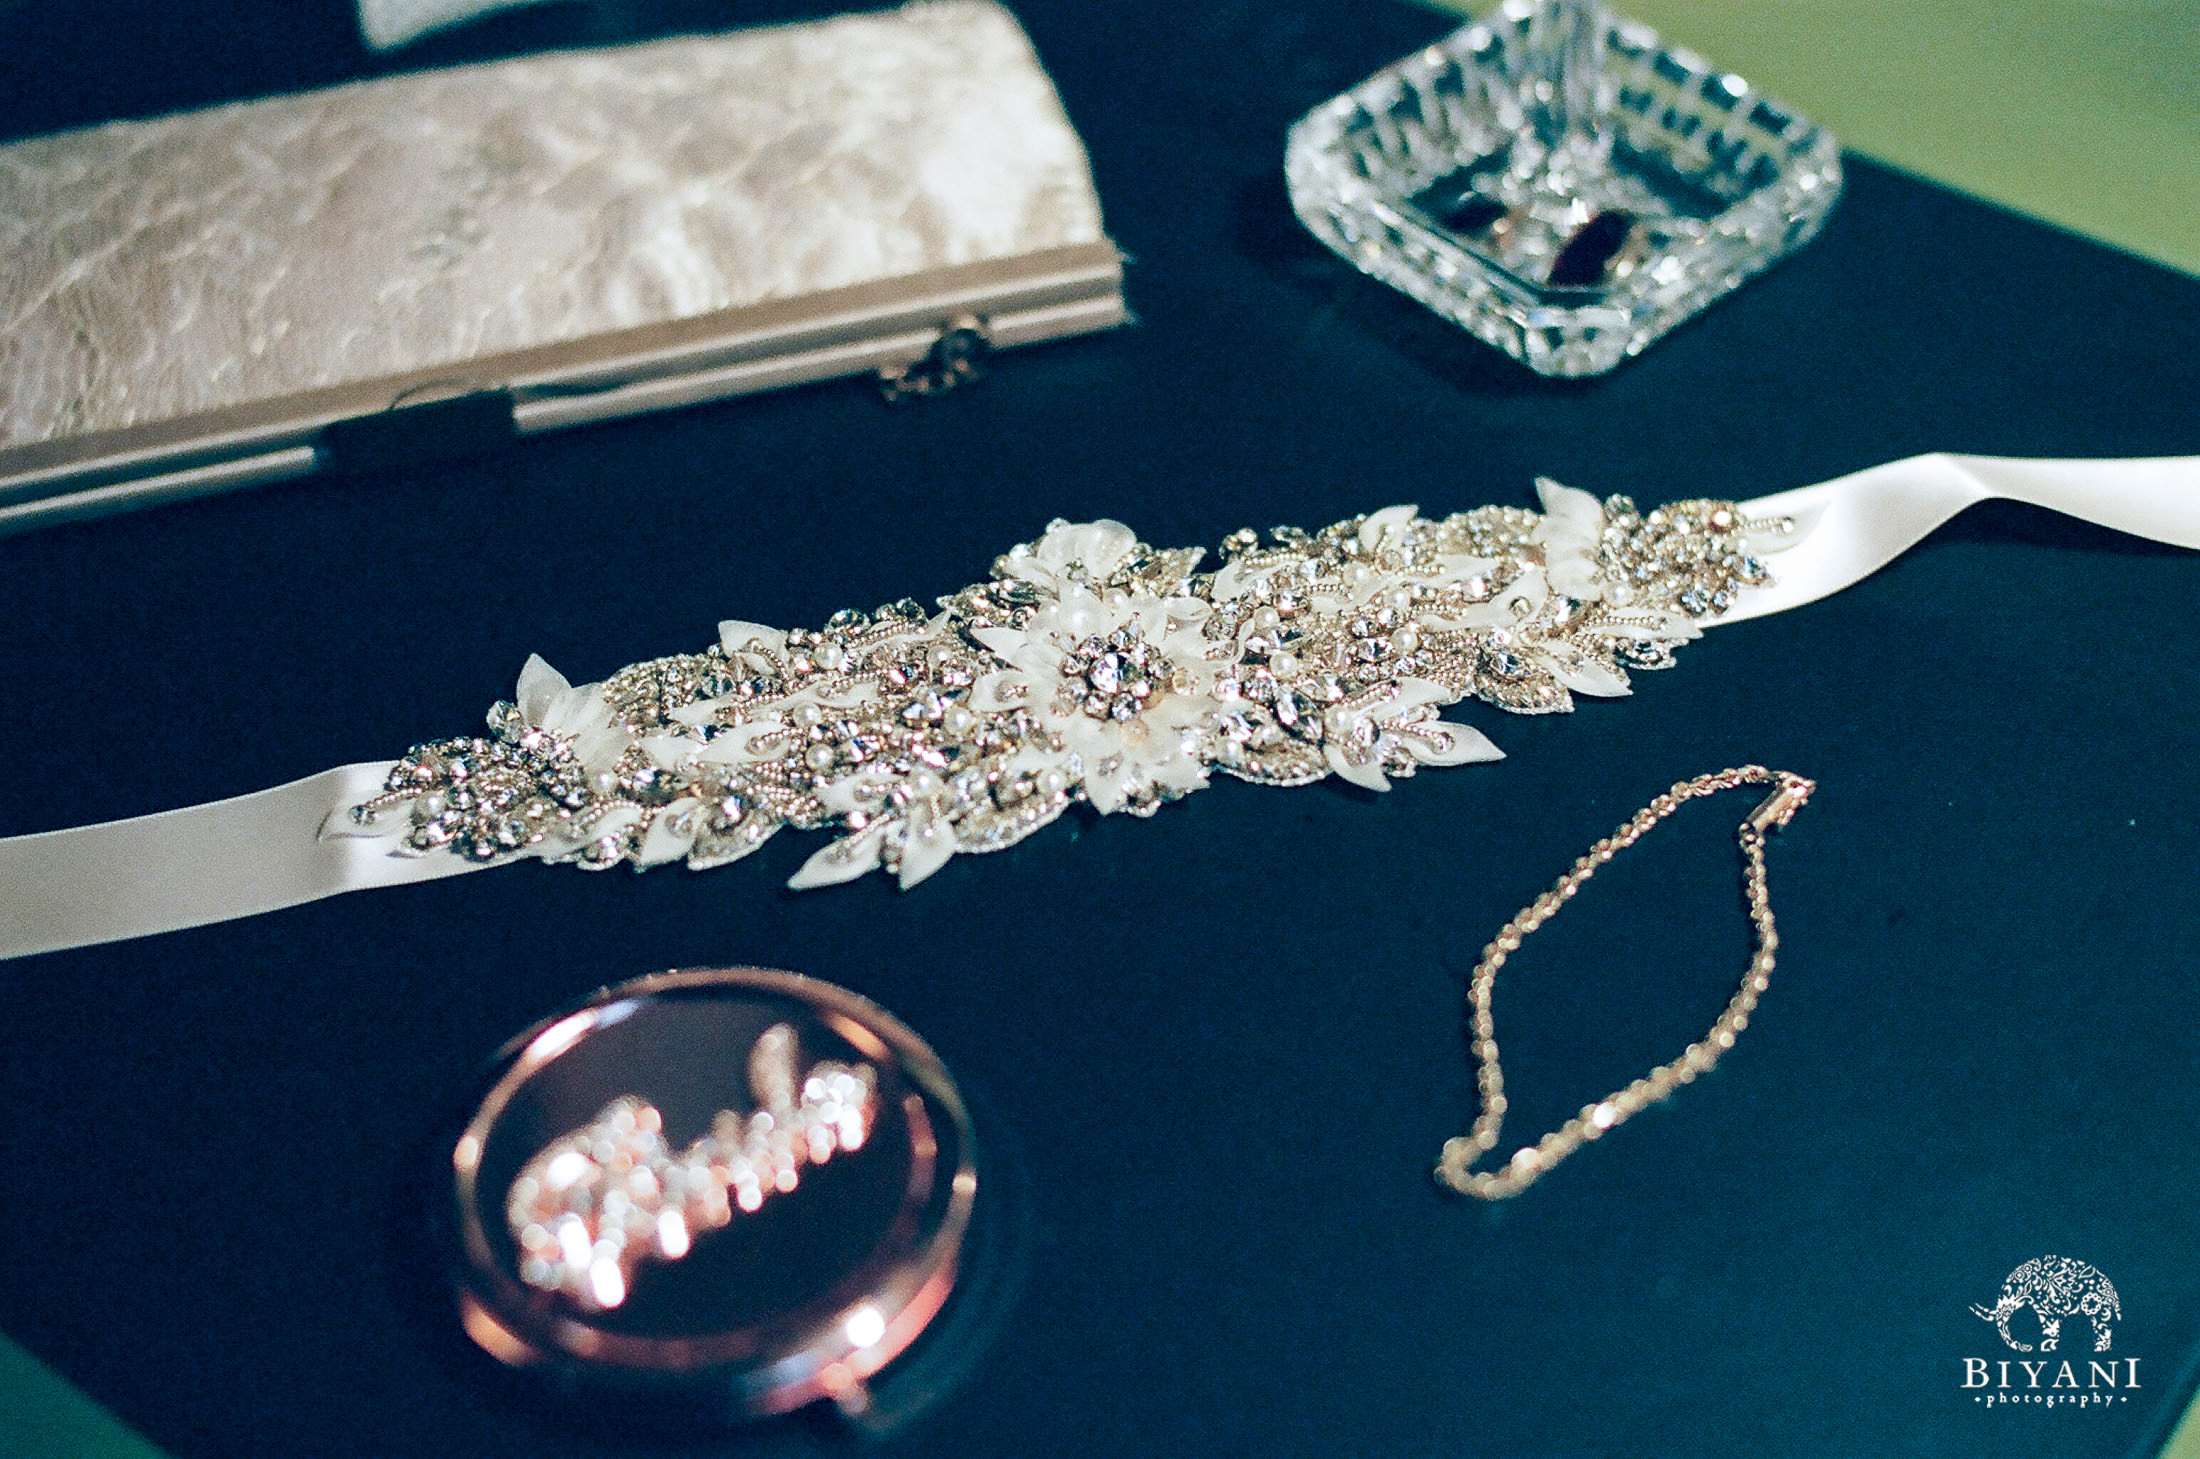 Bride's accessories and details for her wedding outfit